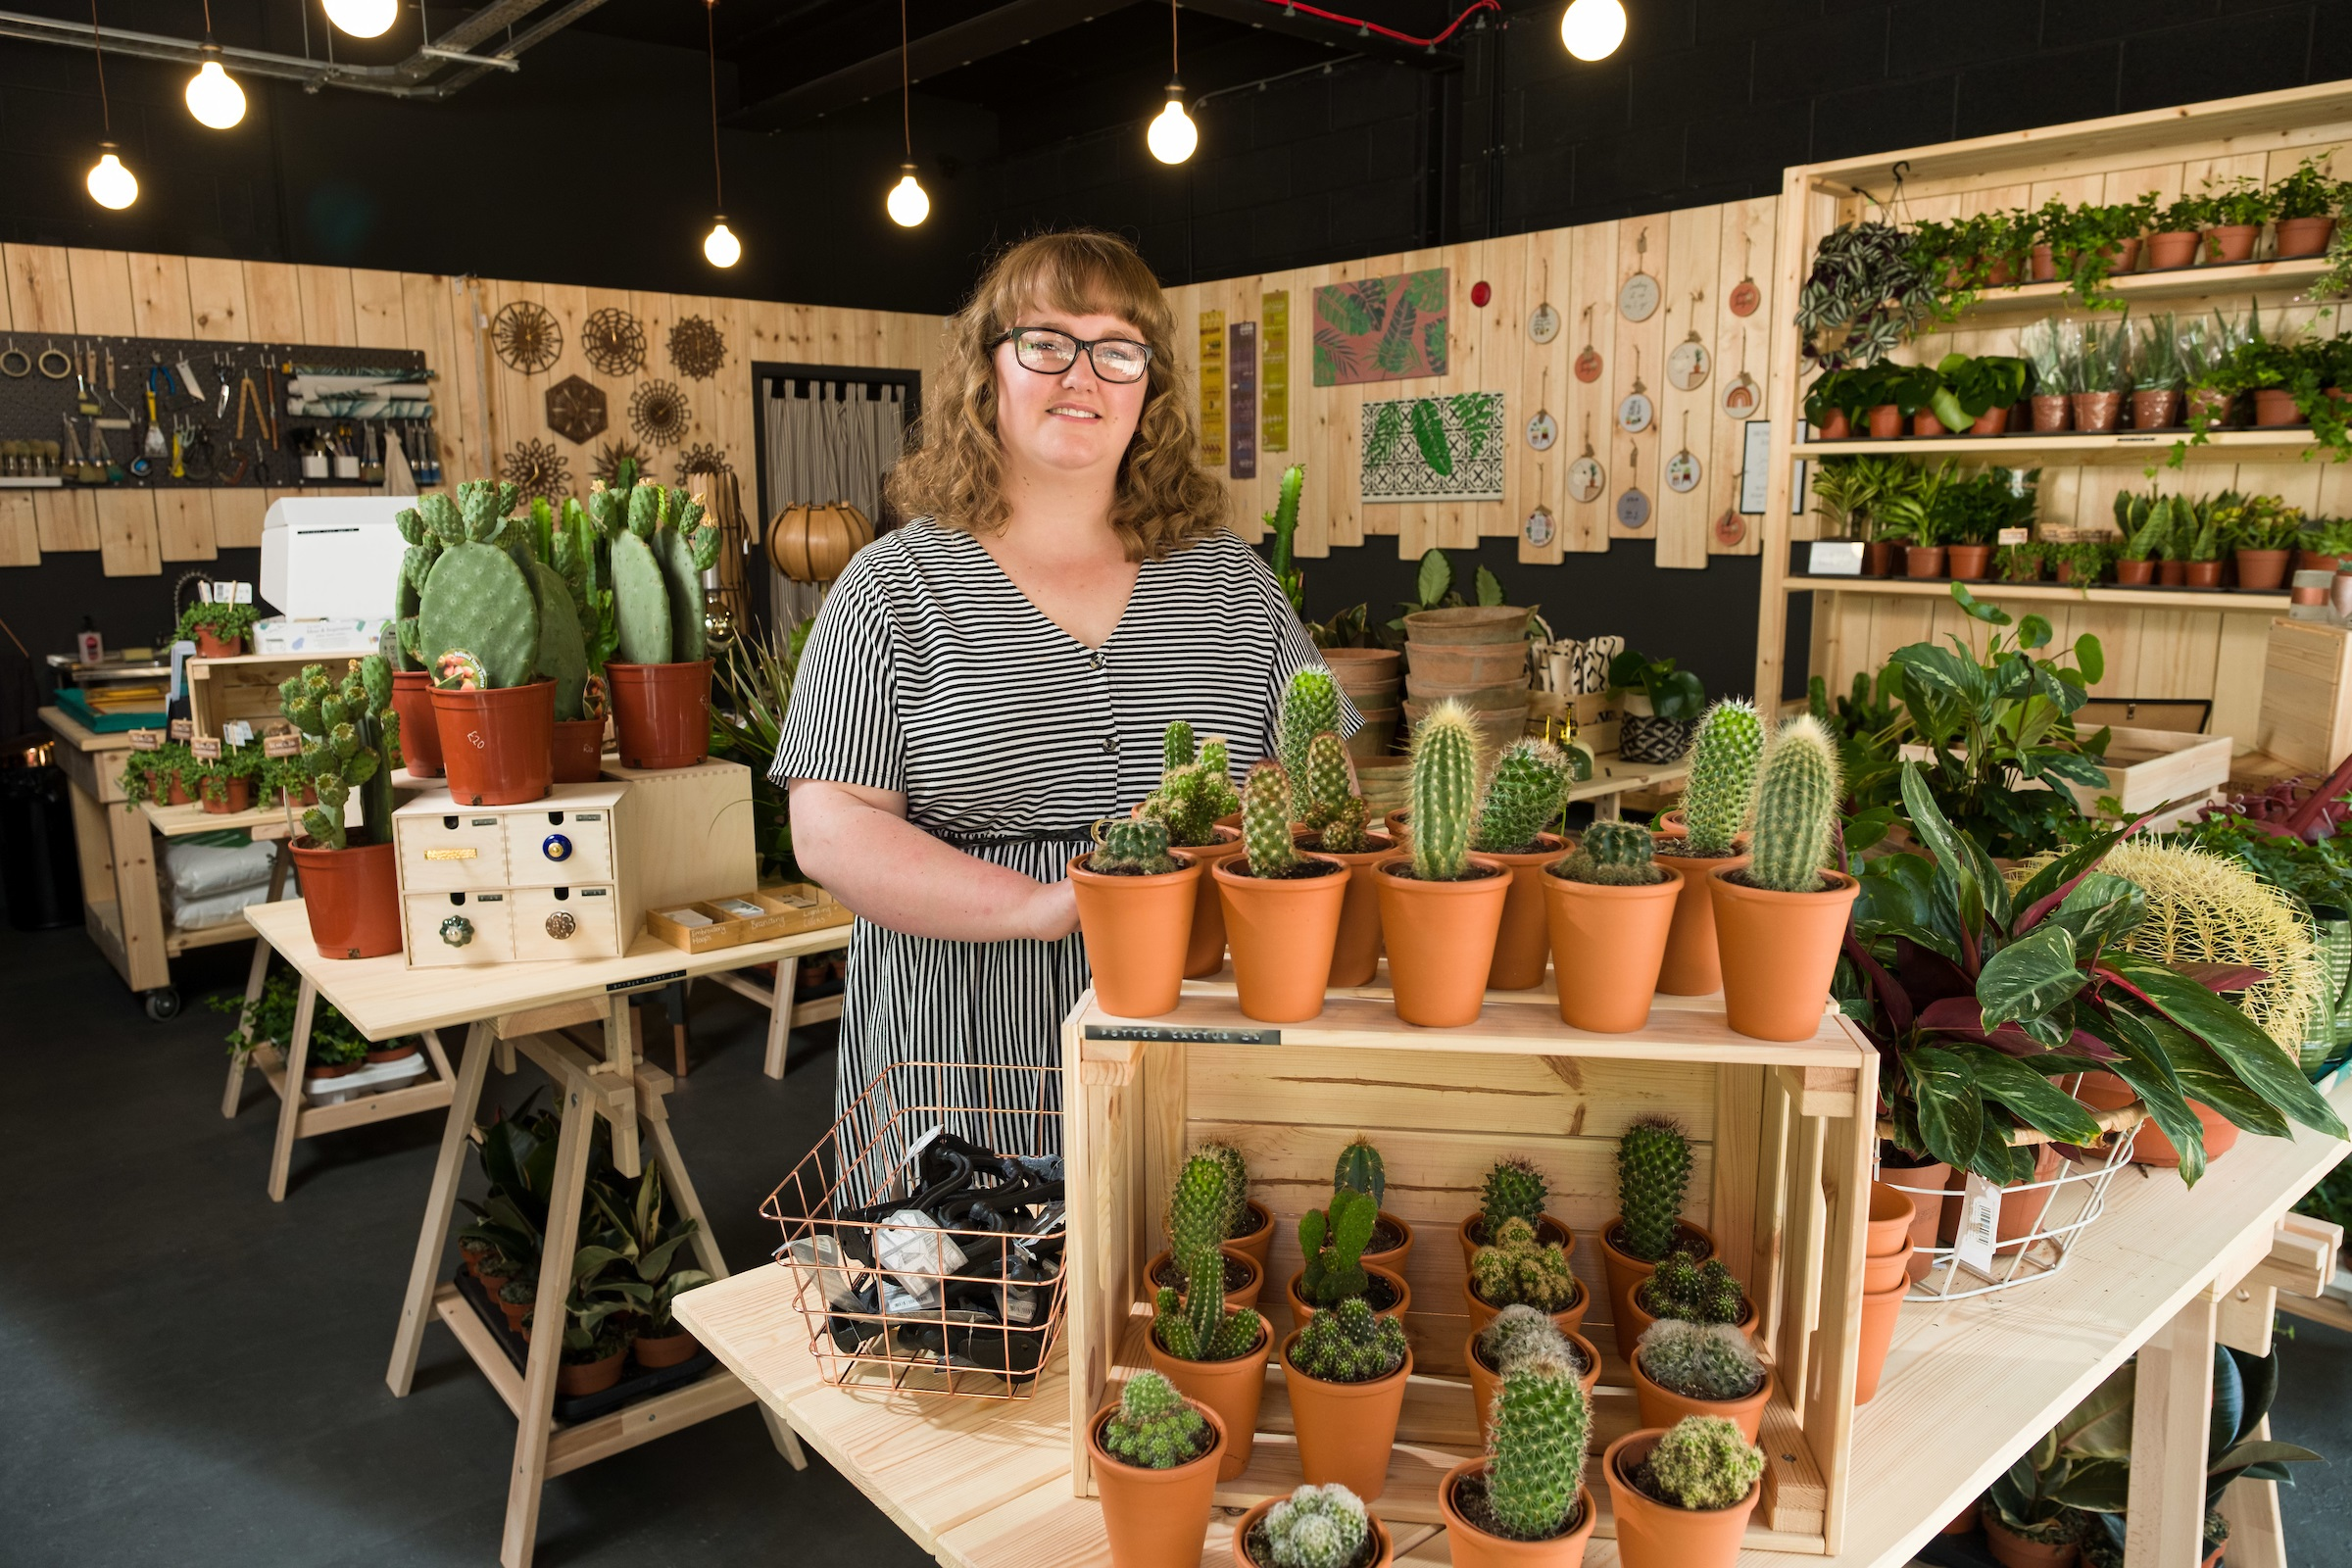 Lara Roberts in her new furniture, homewares and house plants shop, Plant & Paint, which has opened in Hull's Fruit Market urban village.